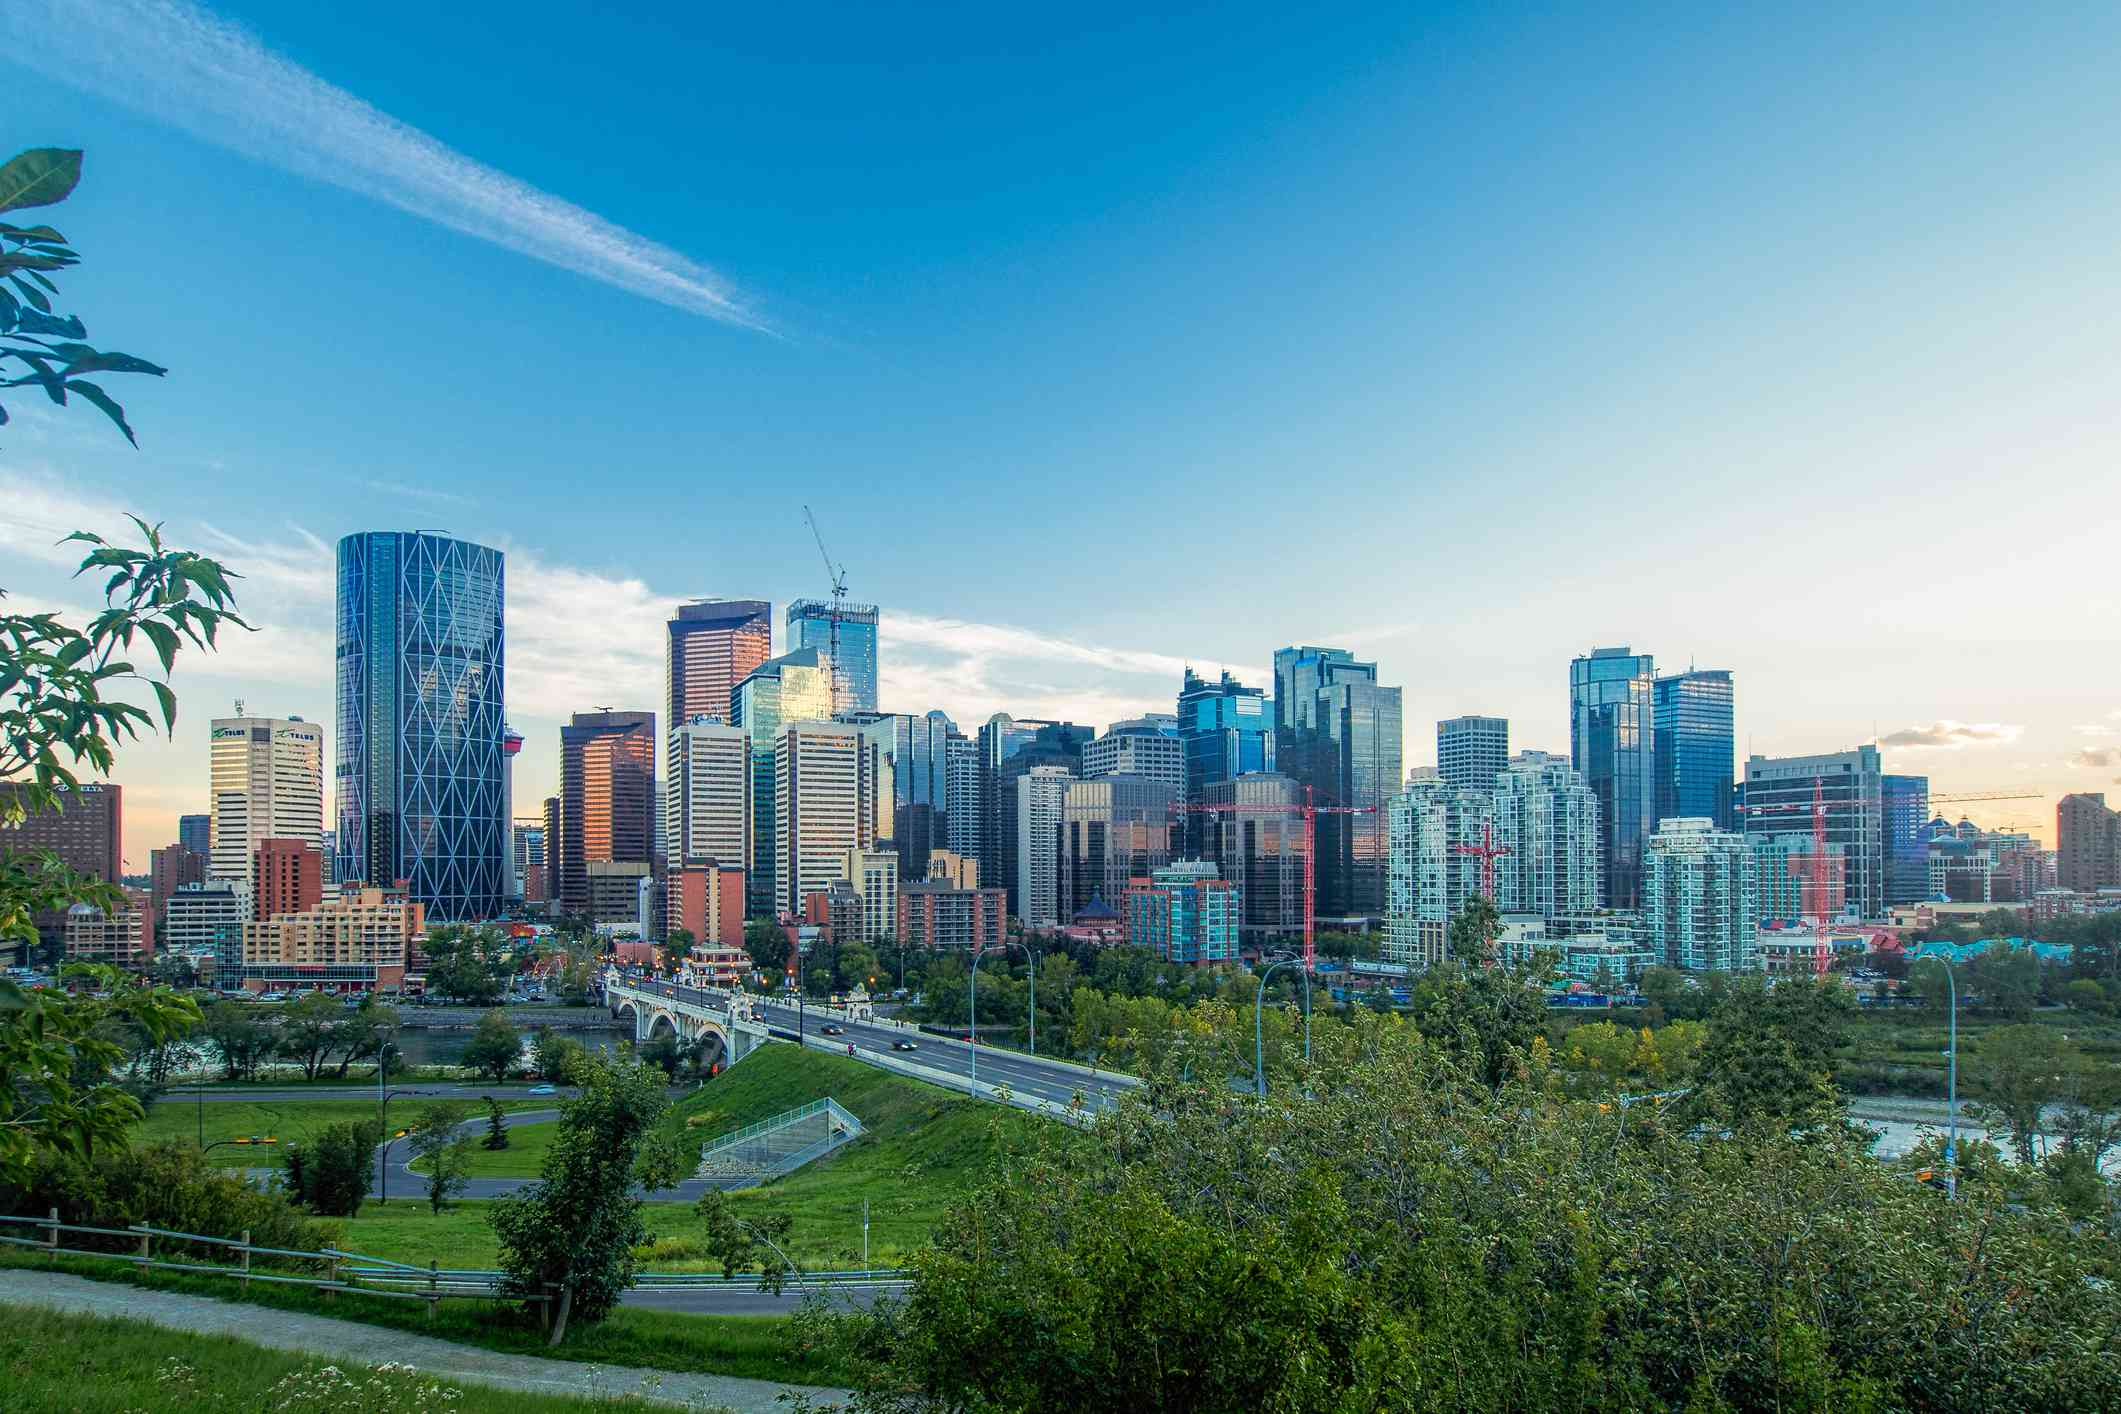 High rise buildings of Calgary in the distance with wide, sloping green area in the foreground, under a blue sky on a sunny day